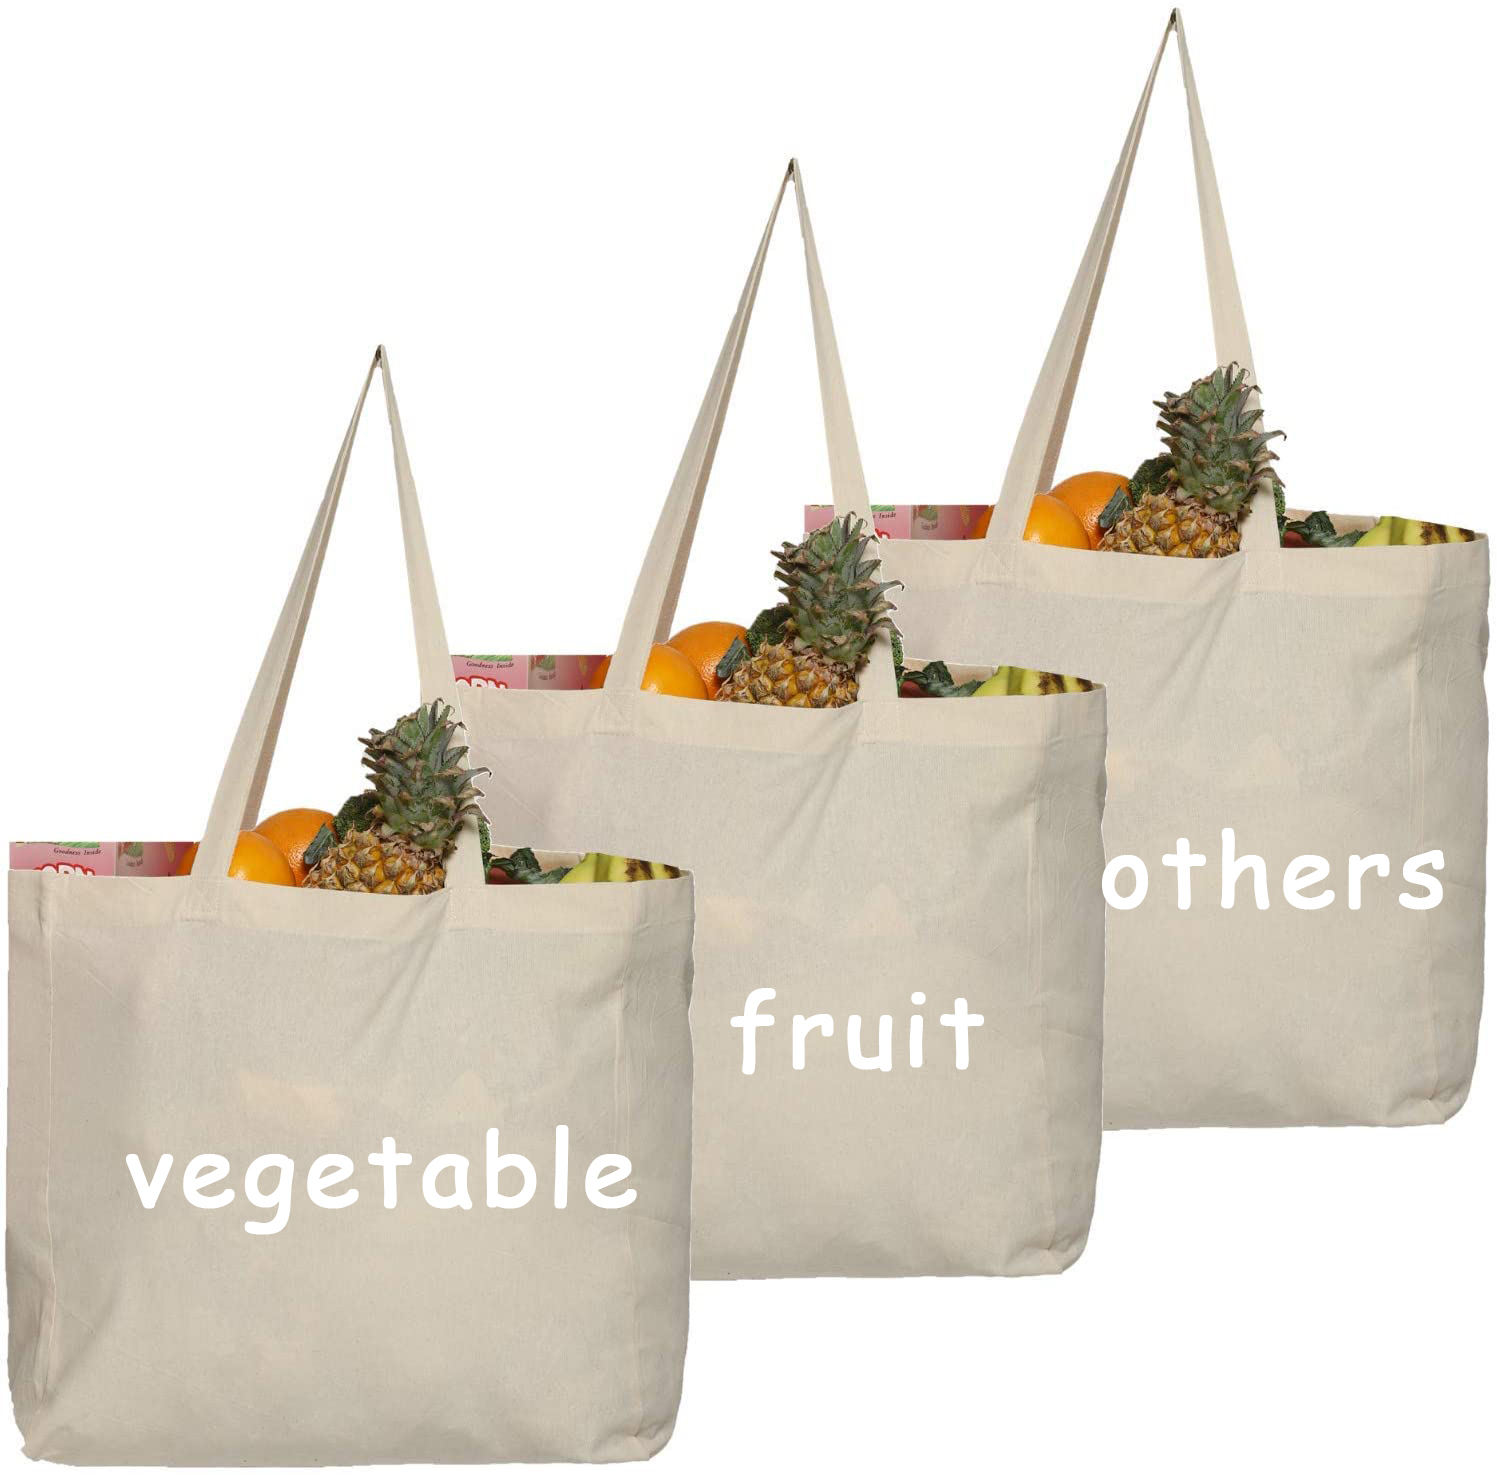 Extra large cotton shopping bag eco vegetable carry bags grocery bag to carry things